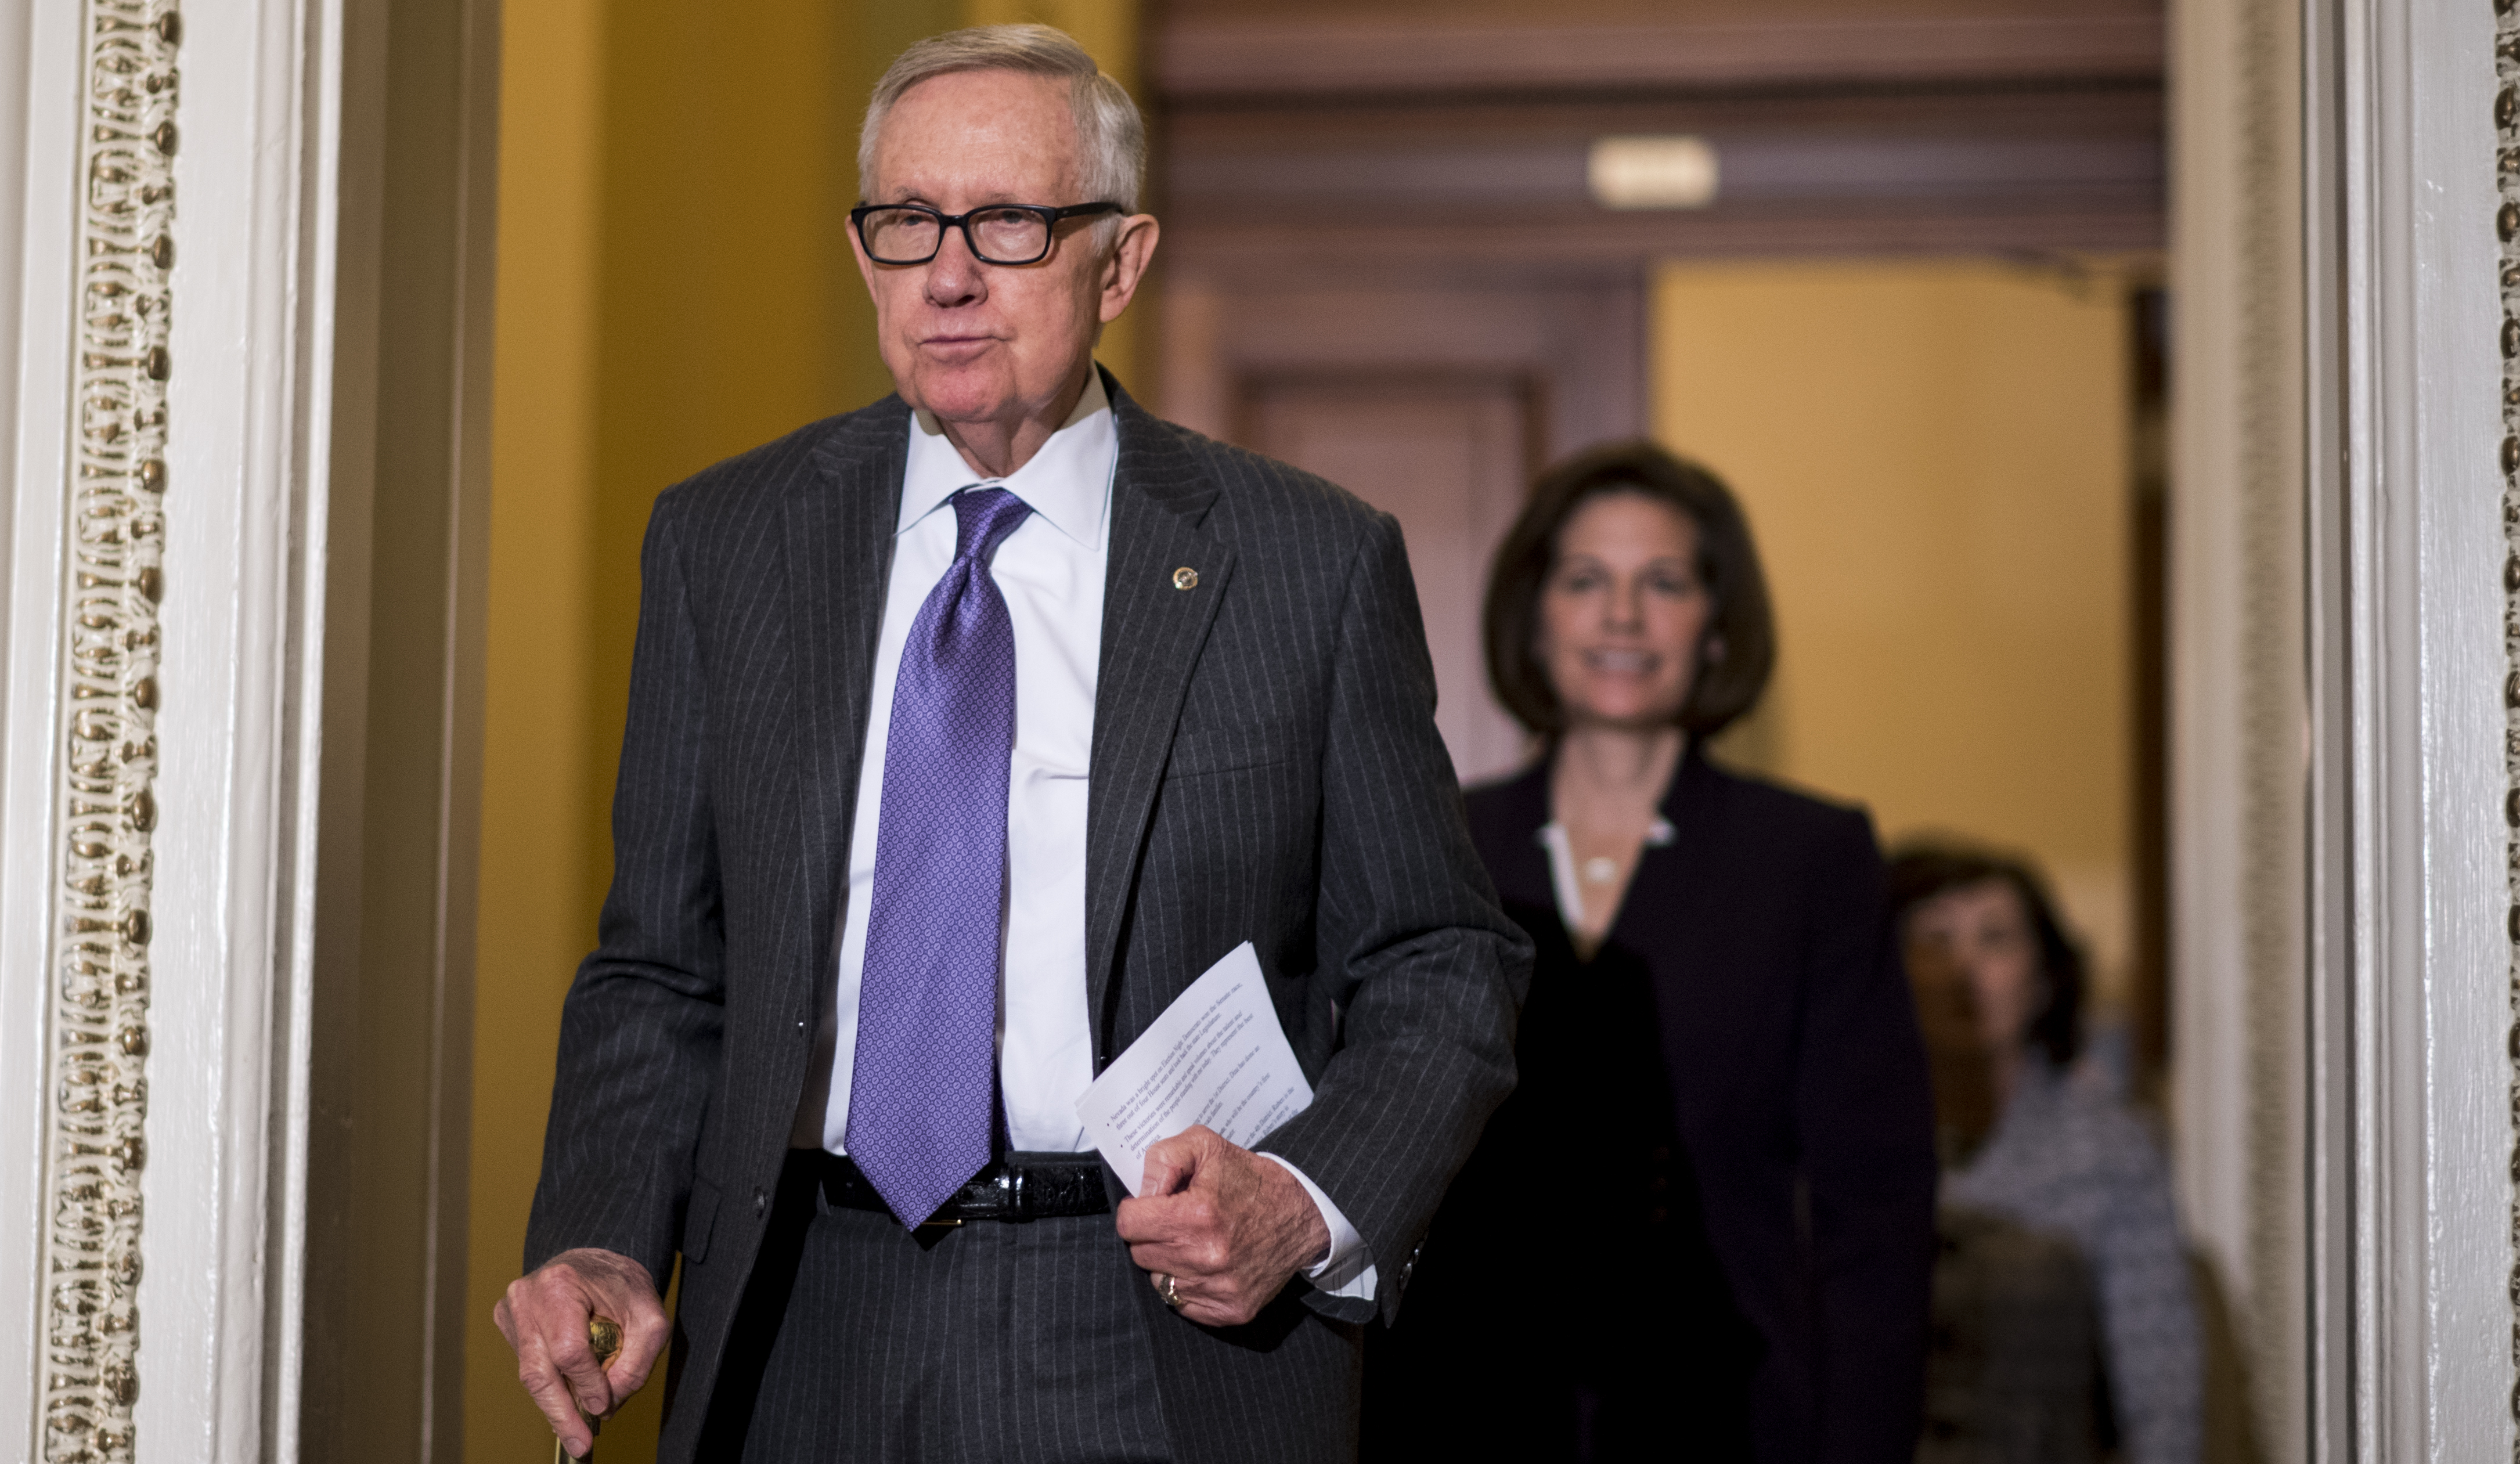 Senate Minority Leader Harry Reid, D-Nev., leads the Democrats of the Nevada delegation to the podium for a media availability in the U.S. Capitol on Monday, Nov. 14, 2016.